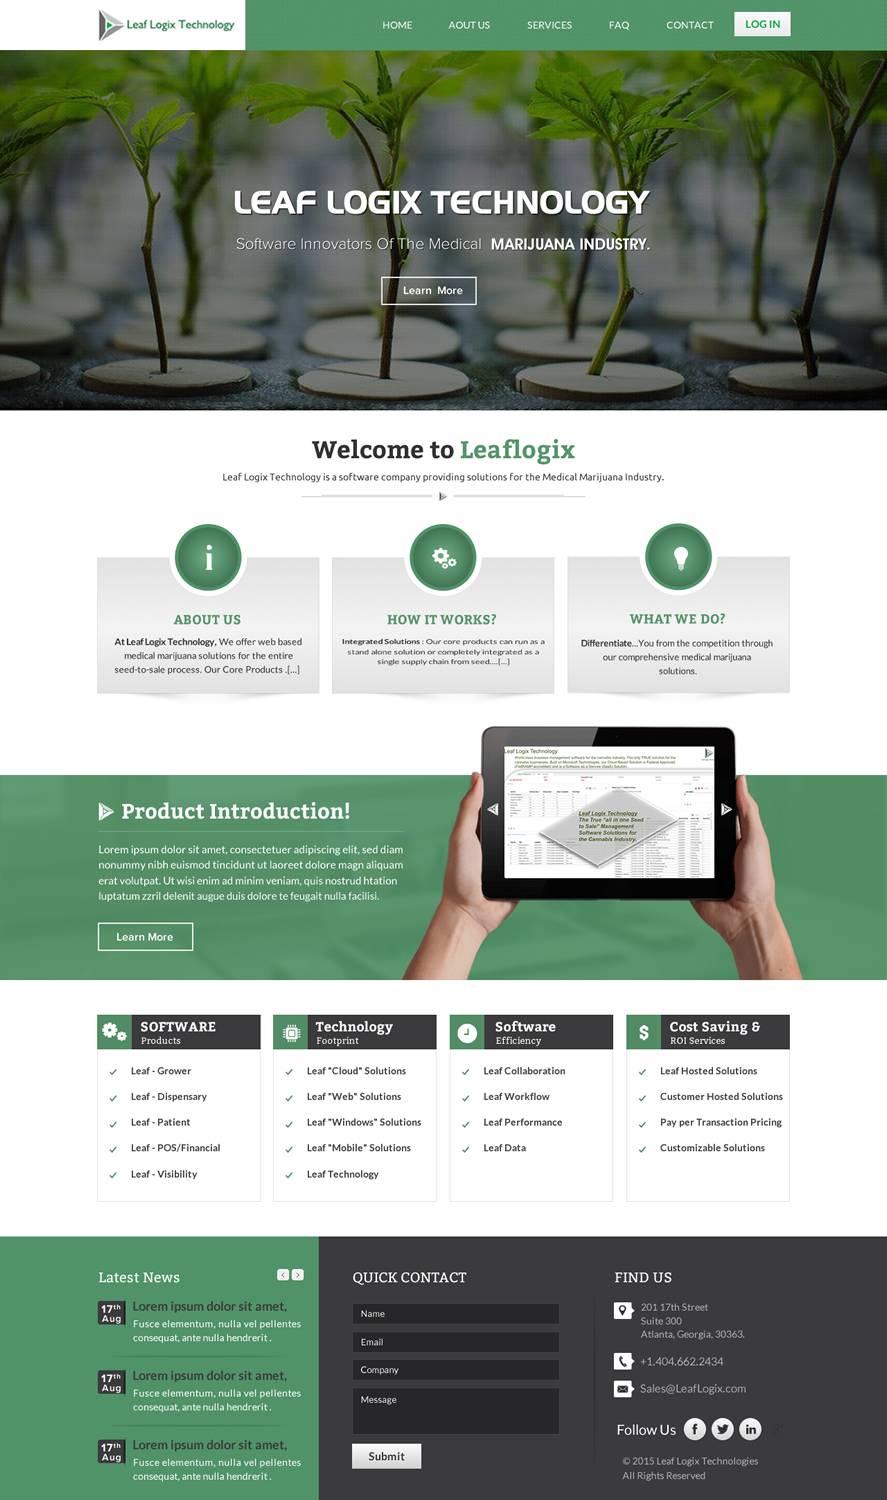 Professional Serious Software Web Design For A Company By Sbss Design 7059330